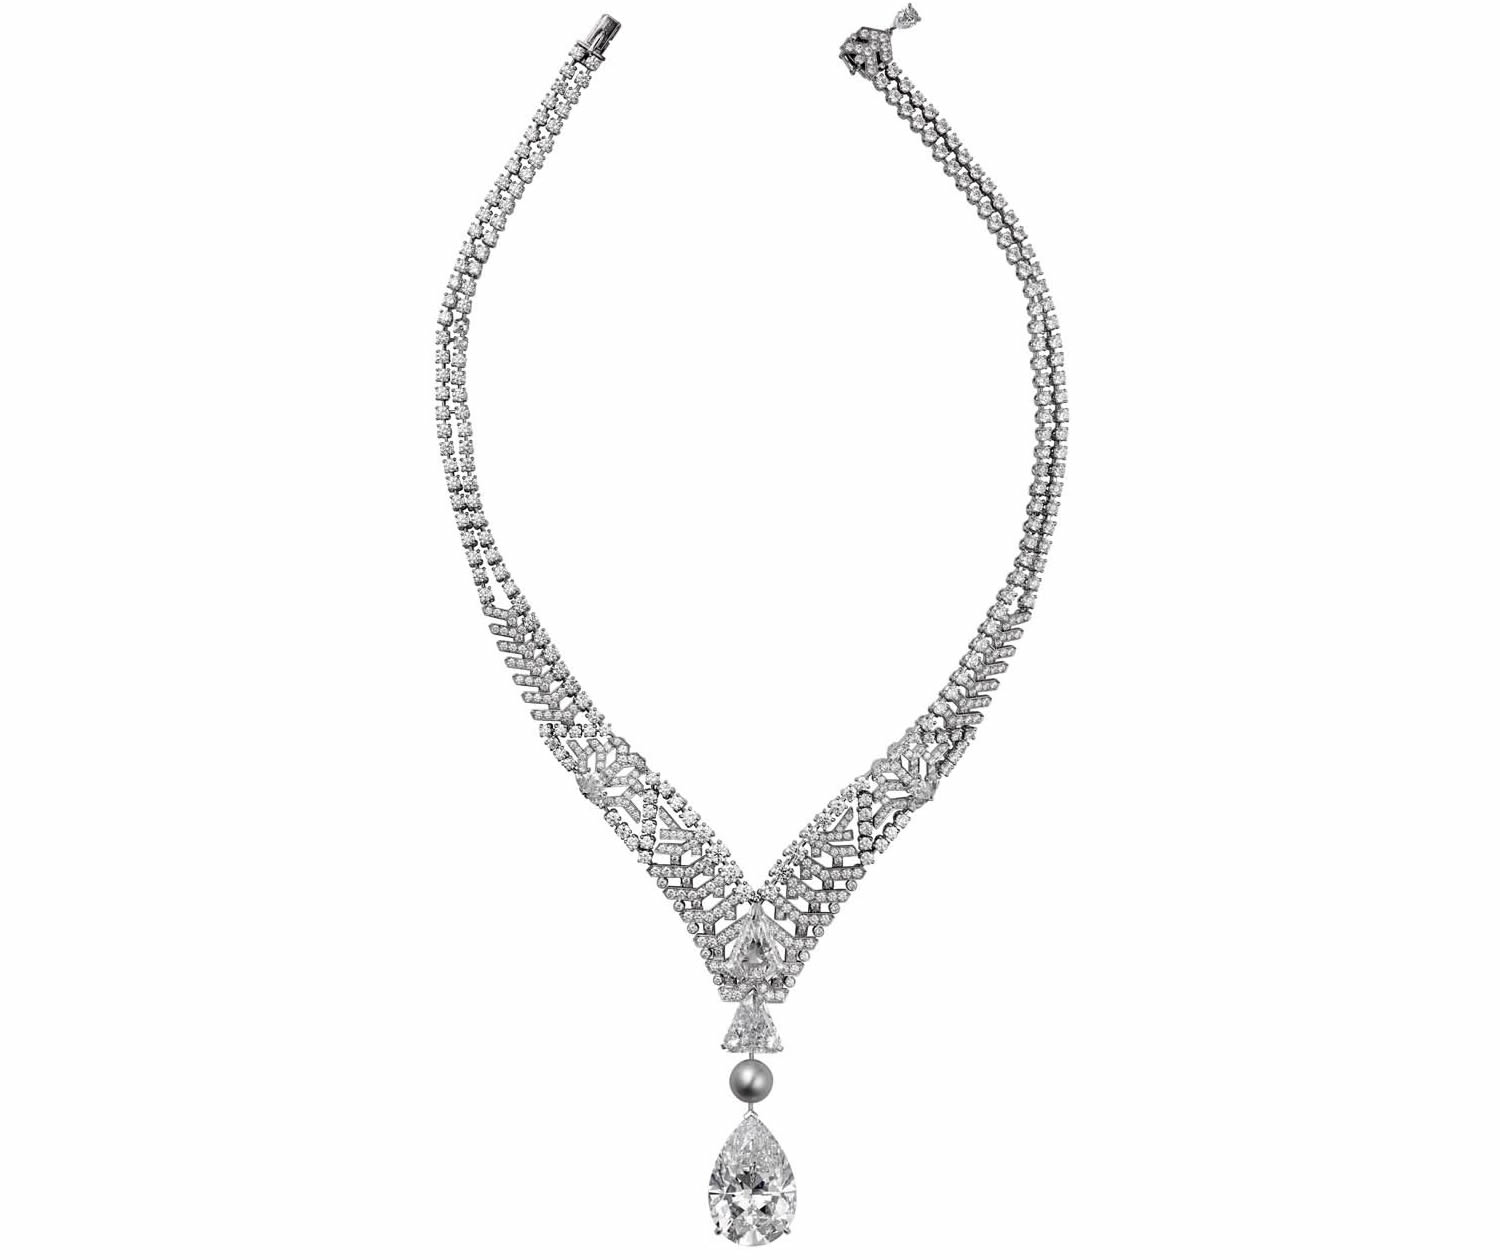 cartier royal collection diamond necklace image source: http://pursuitist.com/cartiers-30ct-diamond-alternates-between-a-necklace-and-a-ring/ last access 12 Oct 2016